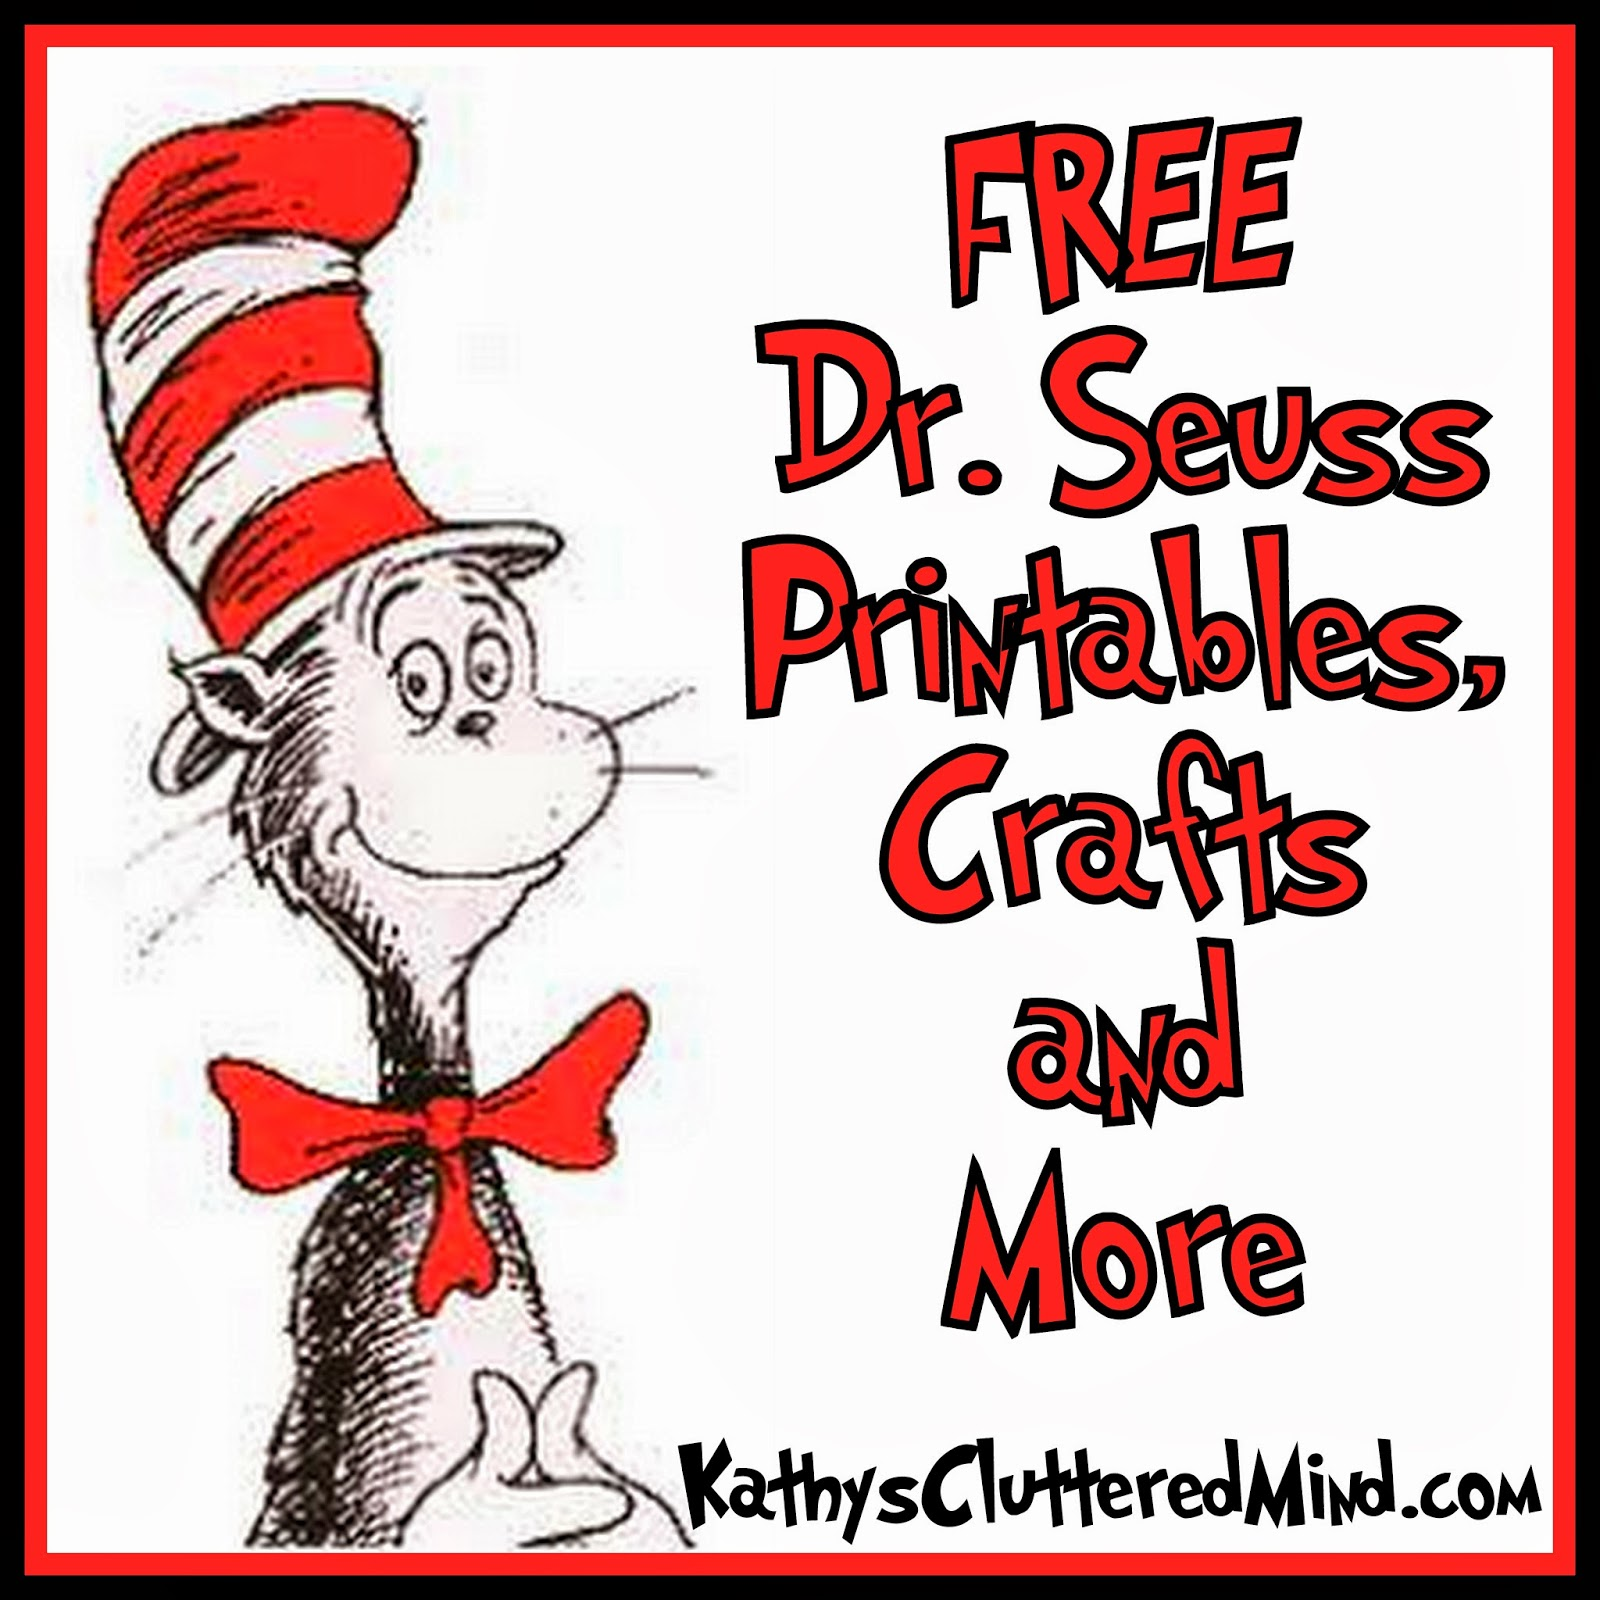 - Kathys Cluttered Mind: FreeBEE Friday Link Up - FREE Dr. Seuss